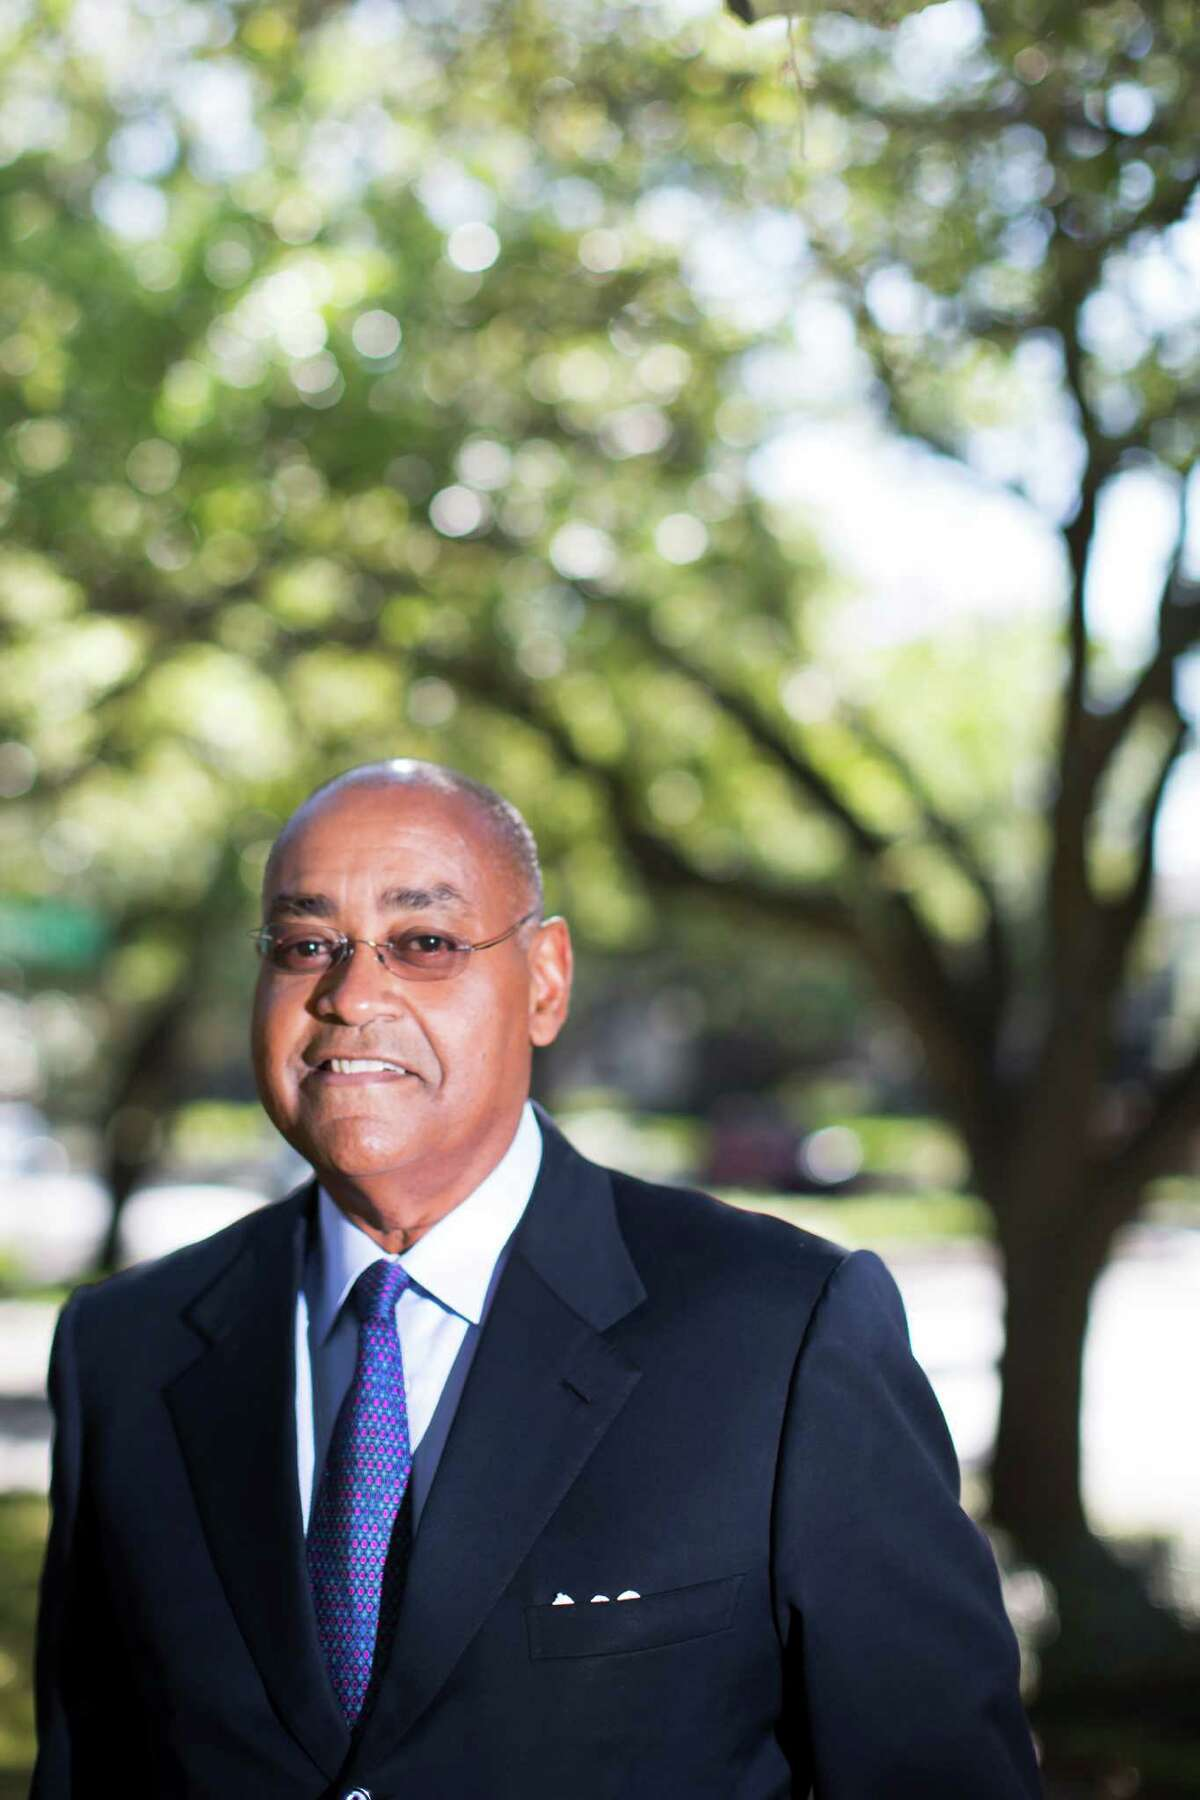 Senator Rodney Ellis is the state senator for Texas' 13th state senate district. The district contains portions of Harris County, including downtown Houston, and Fort Bend County. He is a member of the Democratic Party. Friday, March 25, 2016, in Housto. ( Marie D. De Jesus / Houston Chronicle )